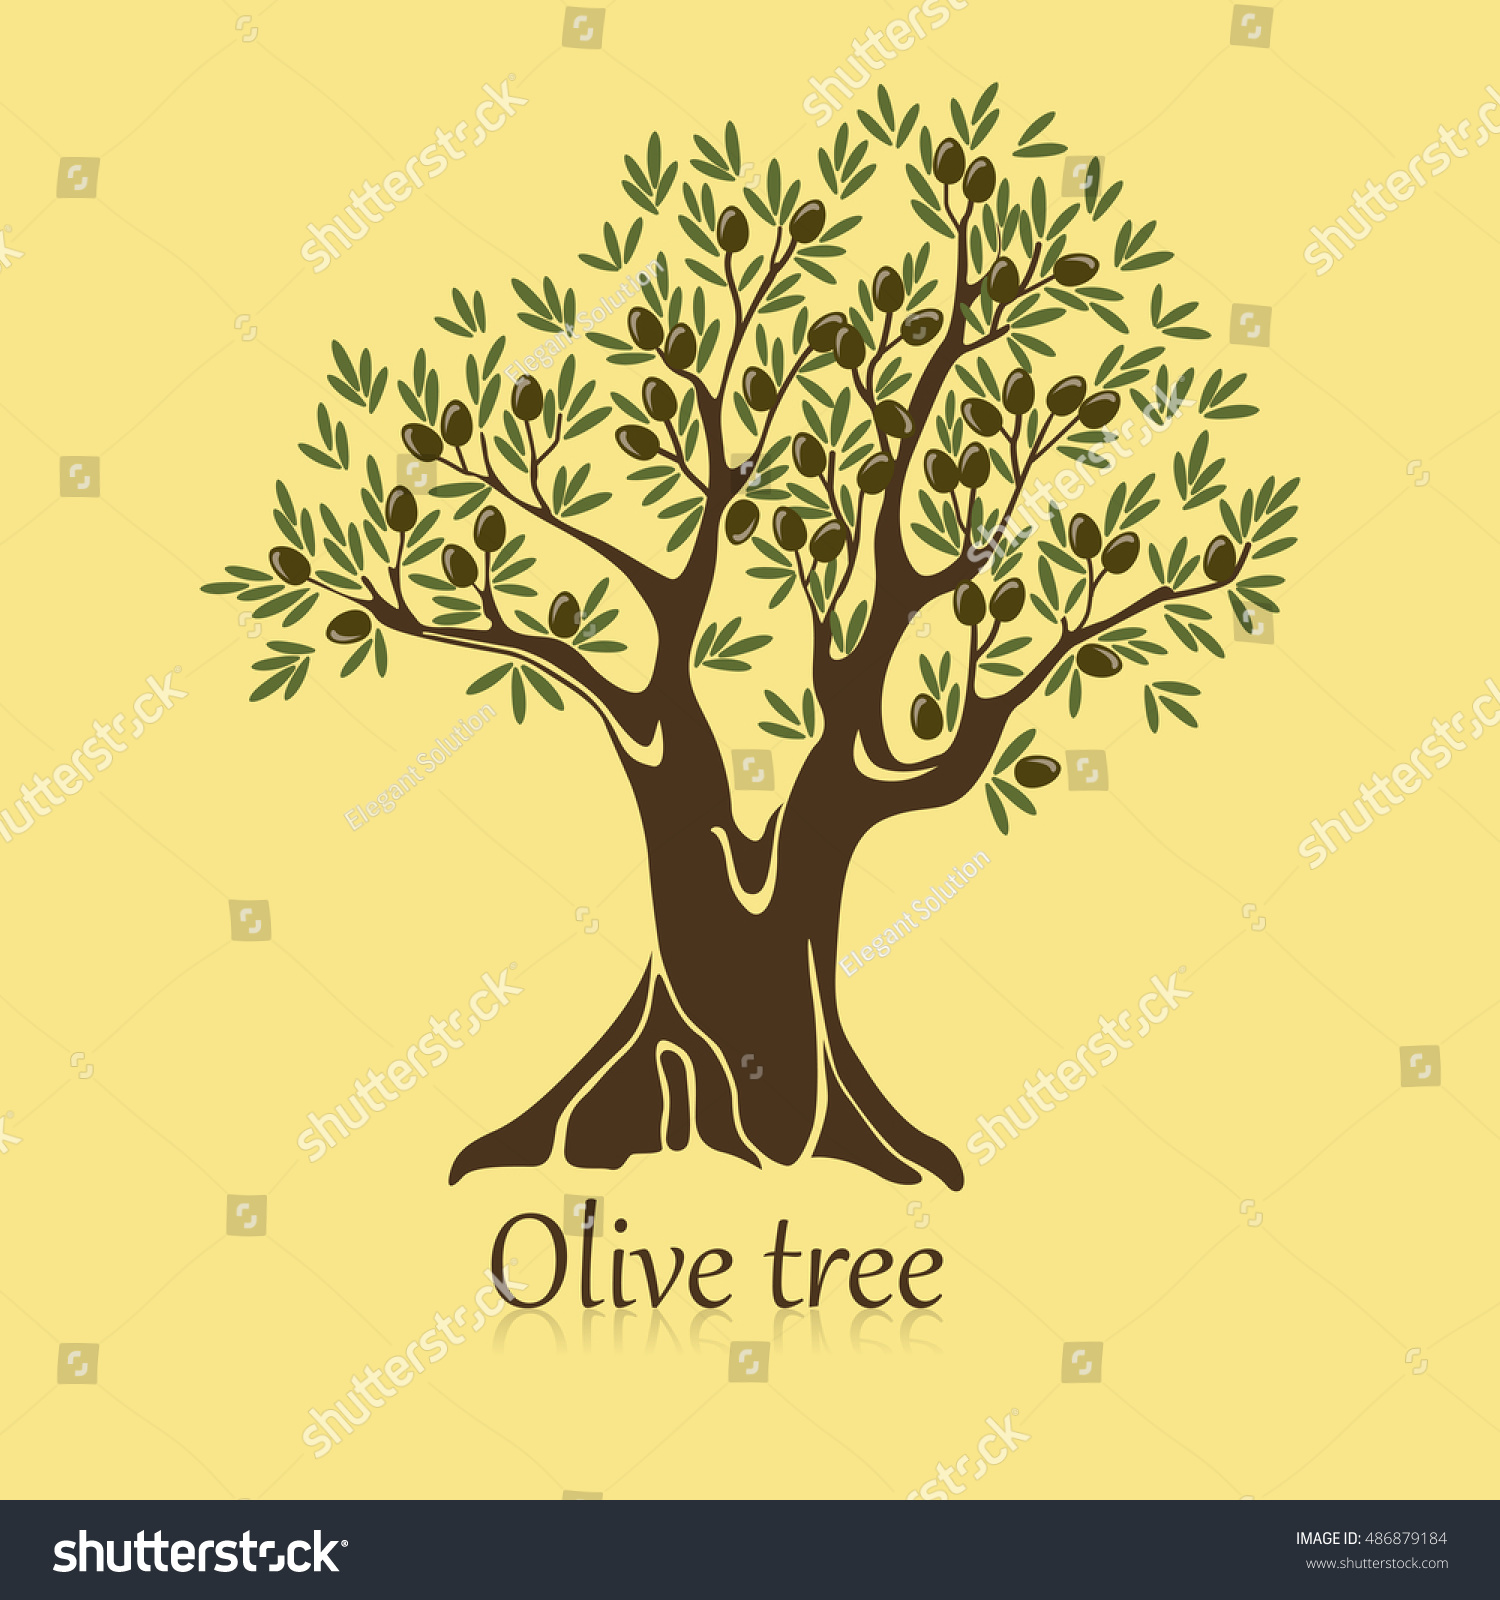 Ripe berries on branches olive tree stock vector 486879184 ripe berries on branches of olive tree banner agriculture sticker or label for bottle or buycottarizona Choice Image